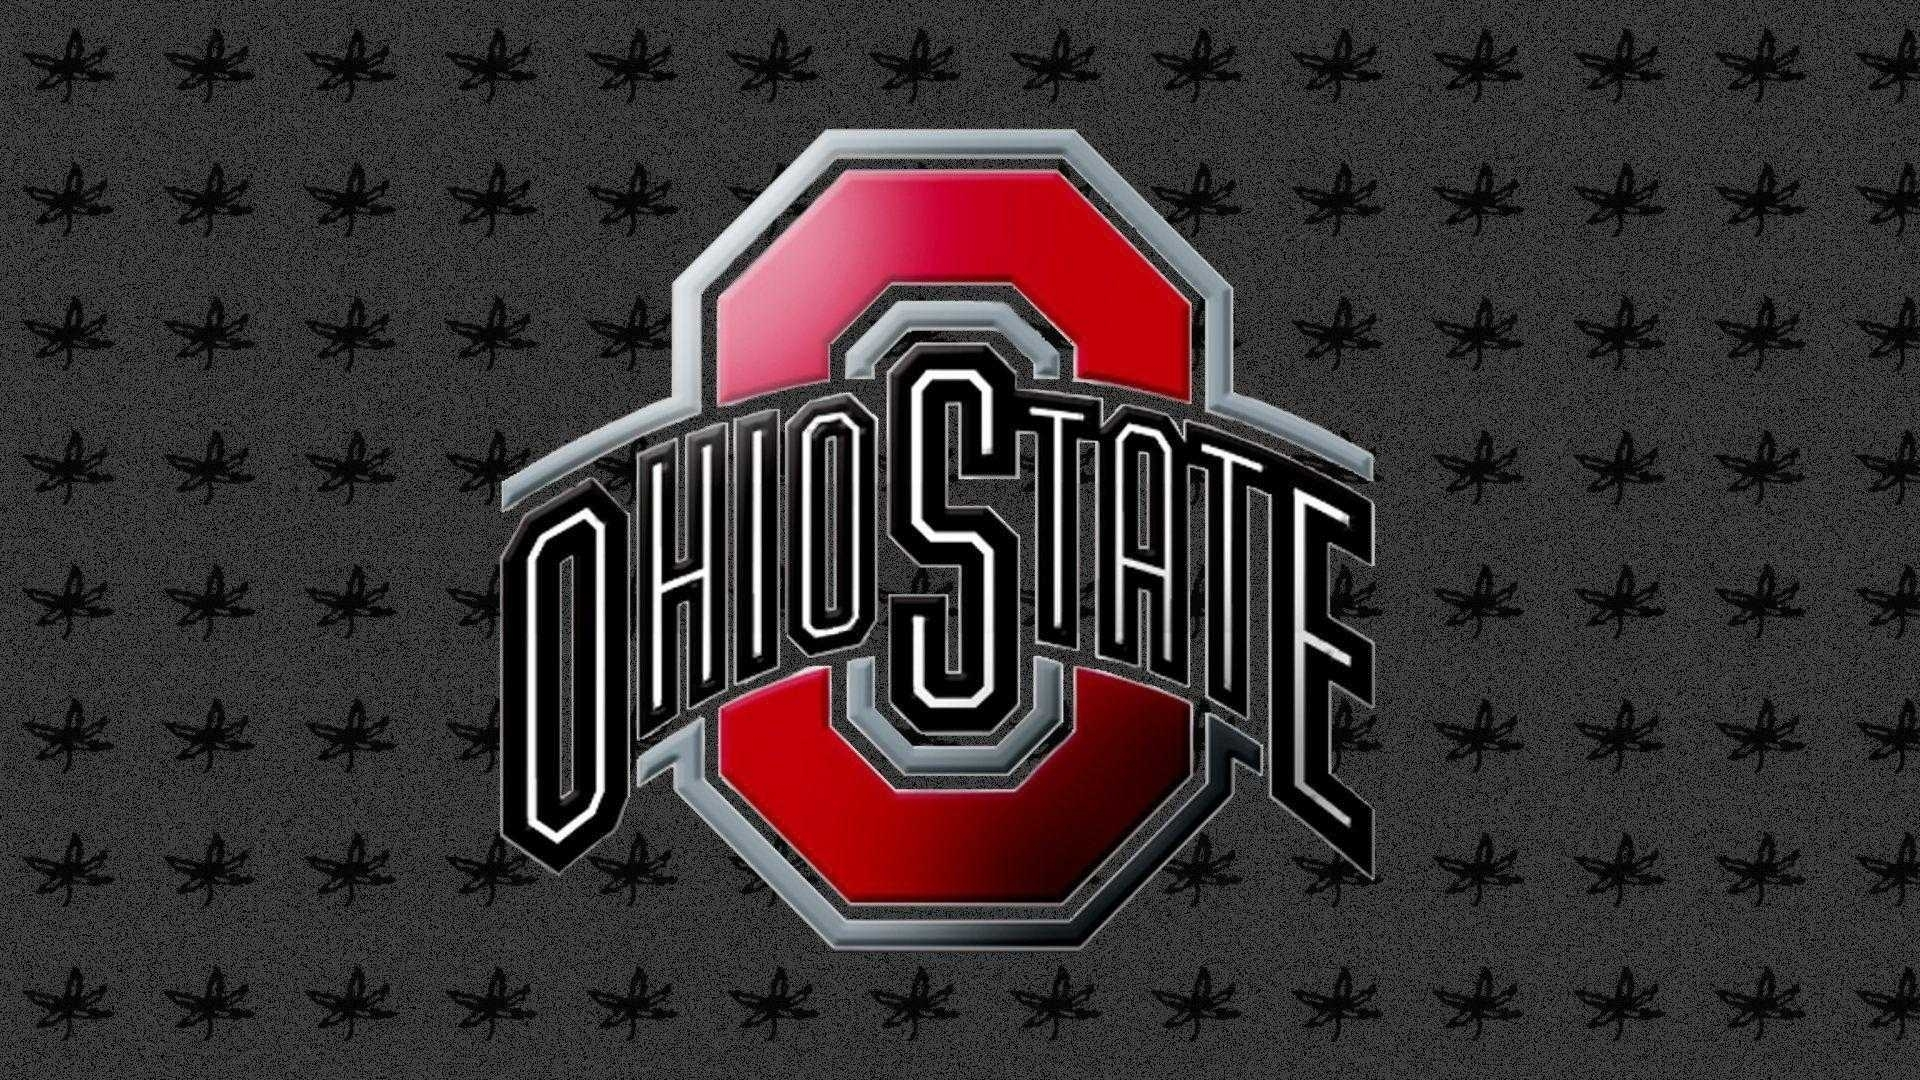 wallpaper hd of ohio state buckeyes football images iphone | wallvie